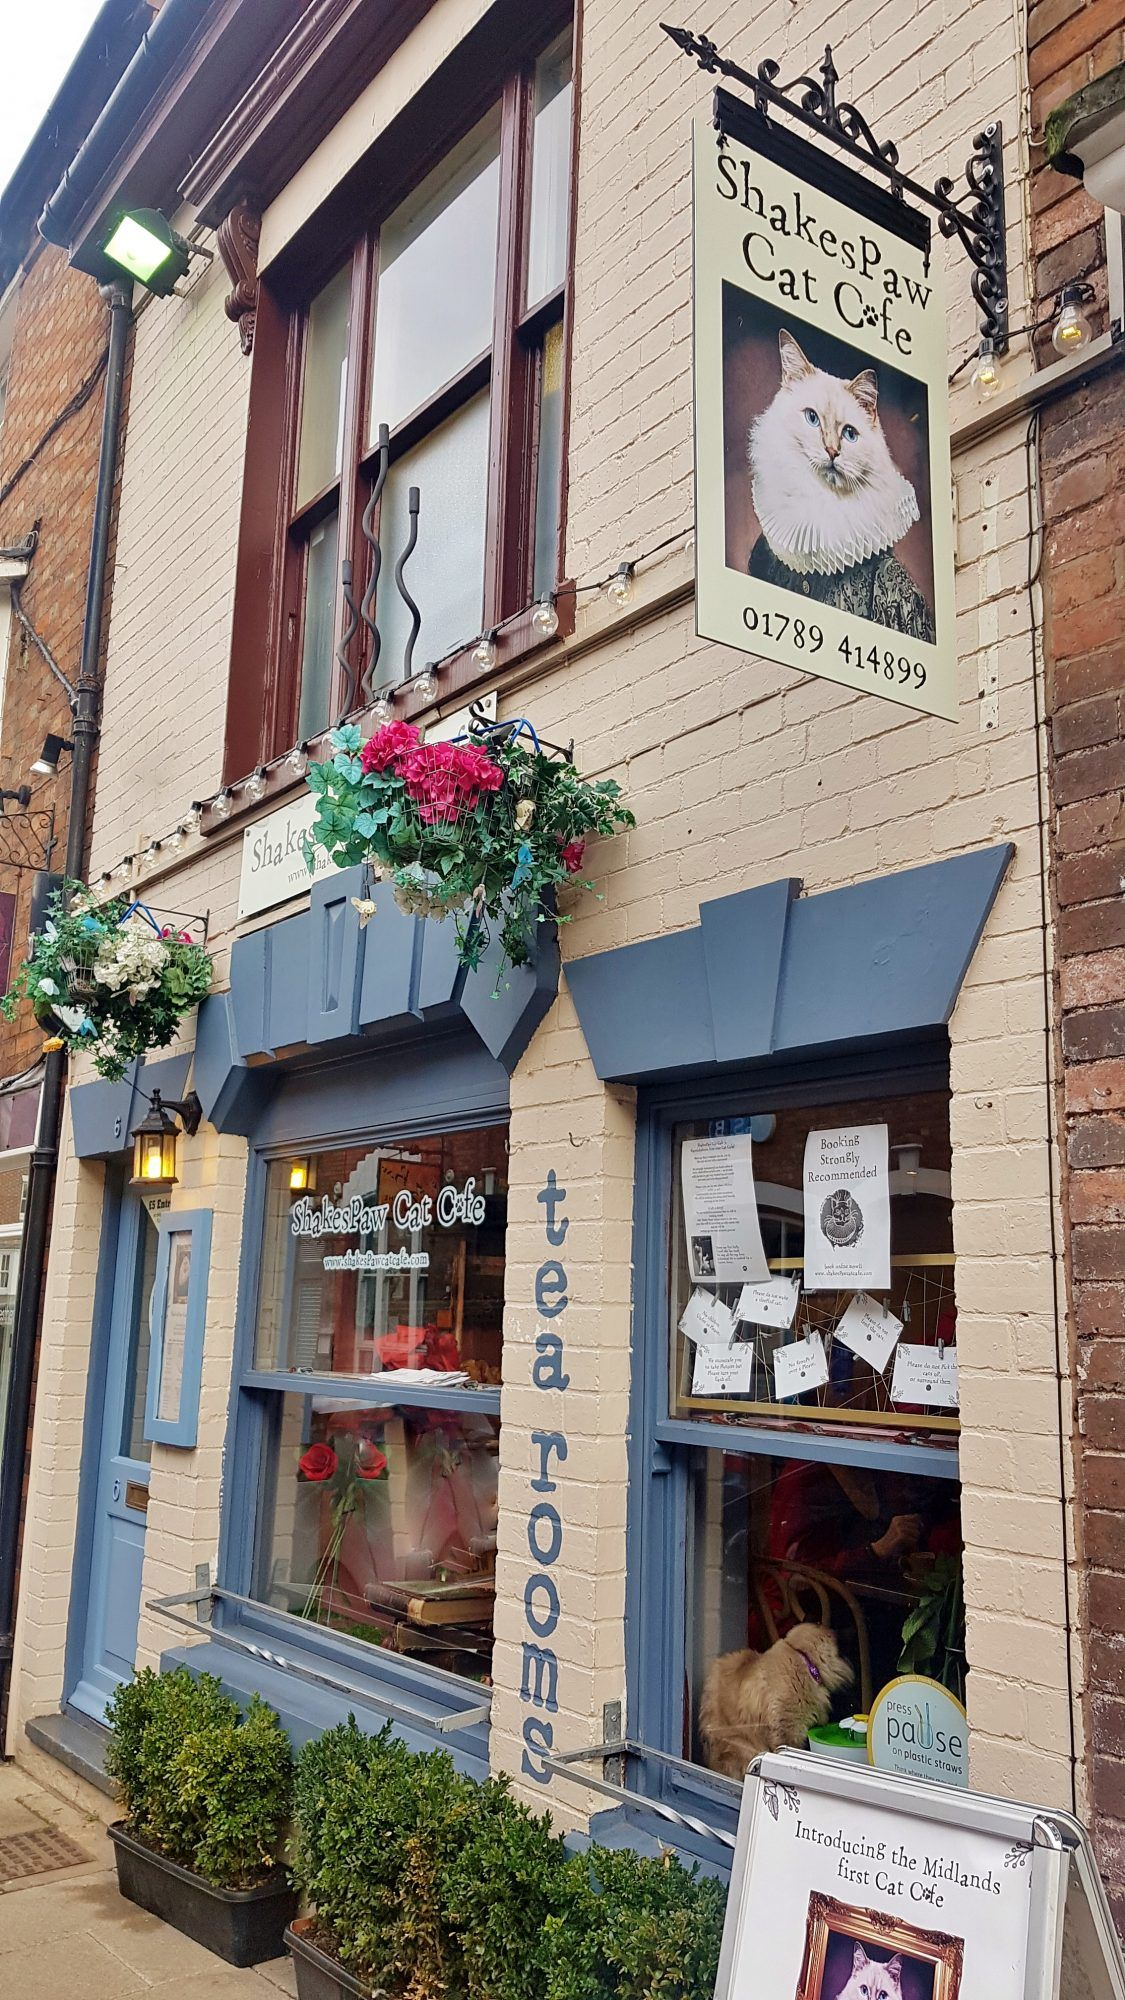 Review Shakespaw Cat Cafe Stratford Upon Avon Victoria S Vintage Blog Kitty Cafe Cat Cafe Pet Cafe